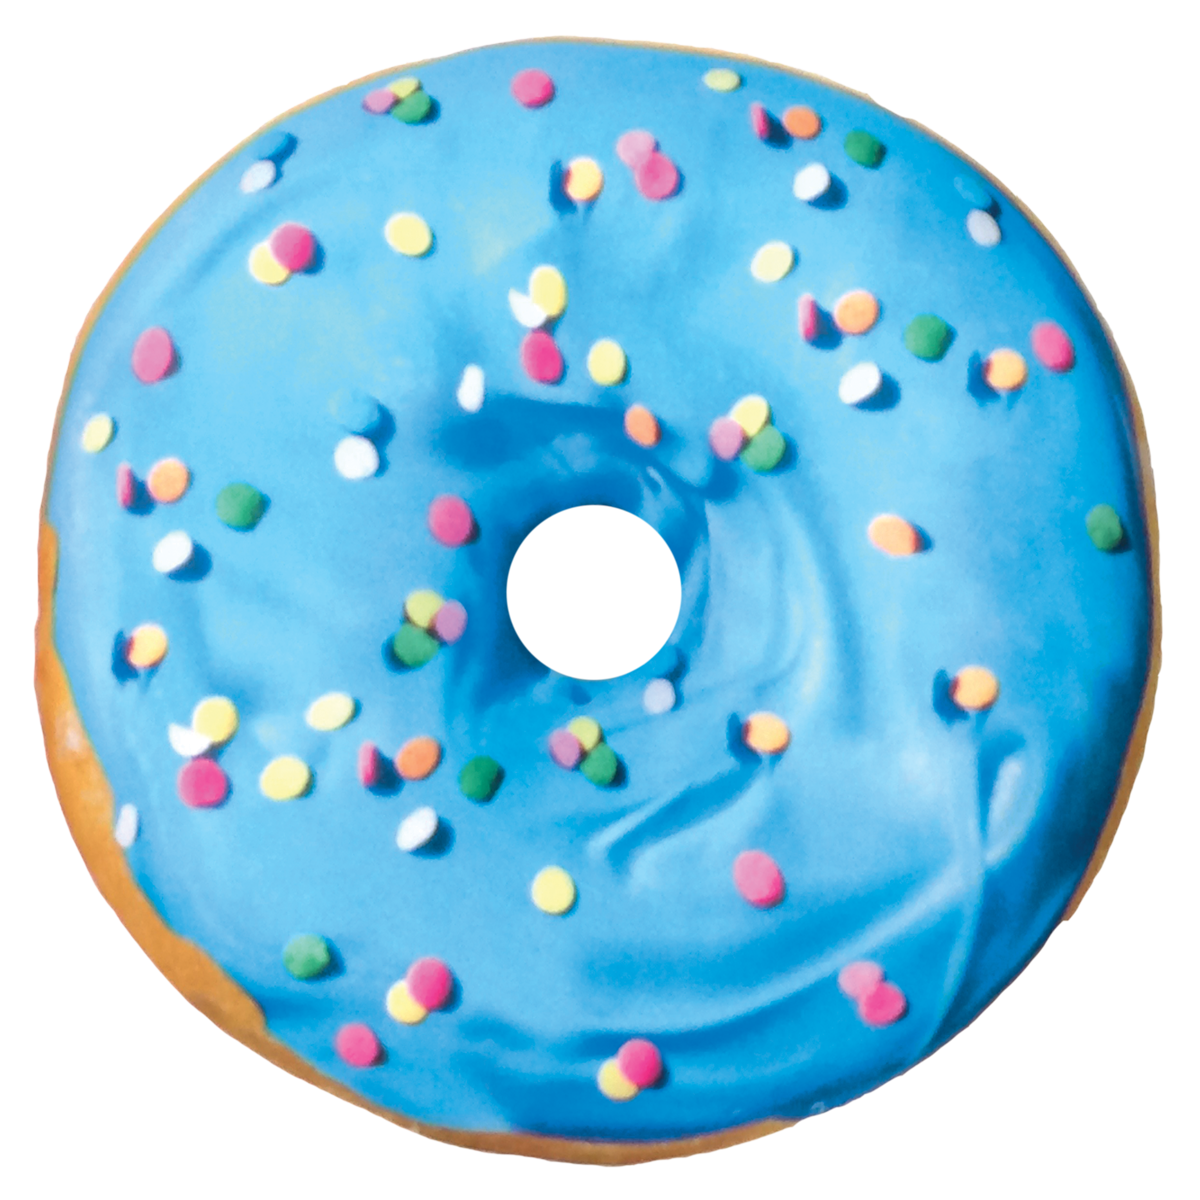 Pink Donut Png Www Imgkid Com The Image Kid Has It